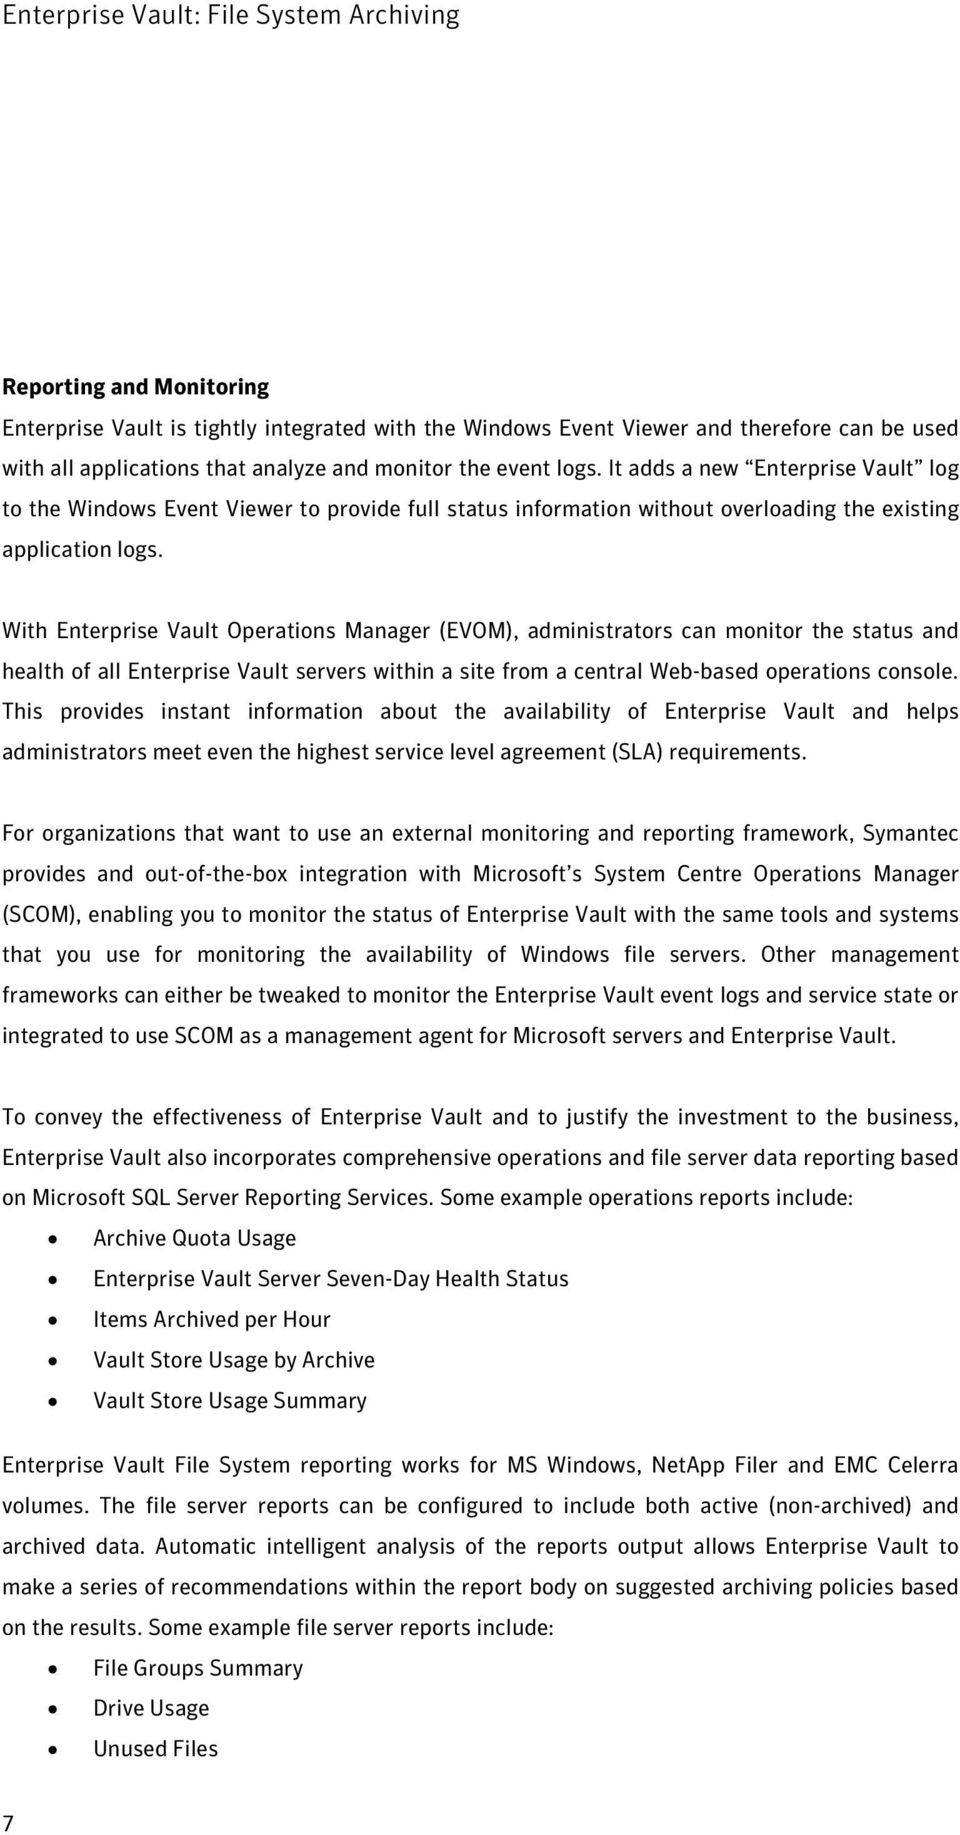 With Enterprise Vault Operations Manager (EVOM), administrators can monitor the status and health of all Enterprise Vault servers within a site from a central Web-based operations console.